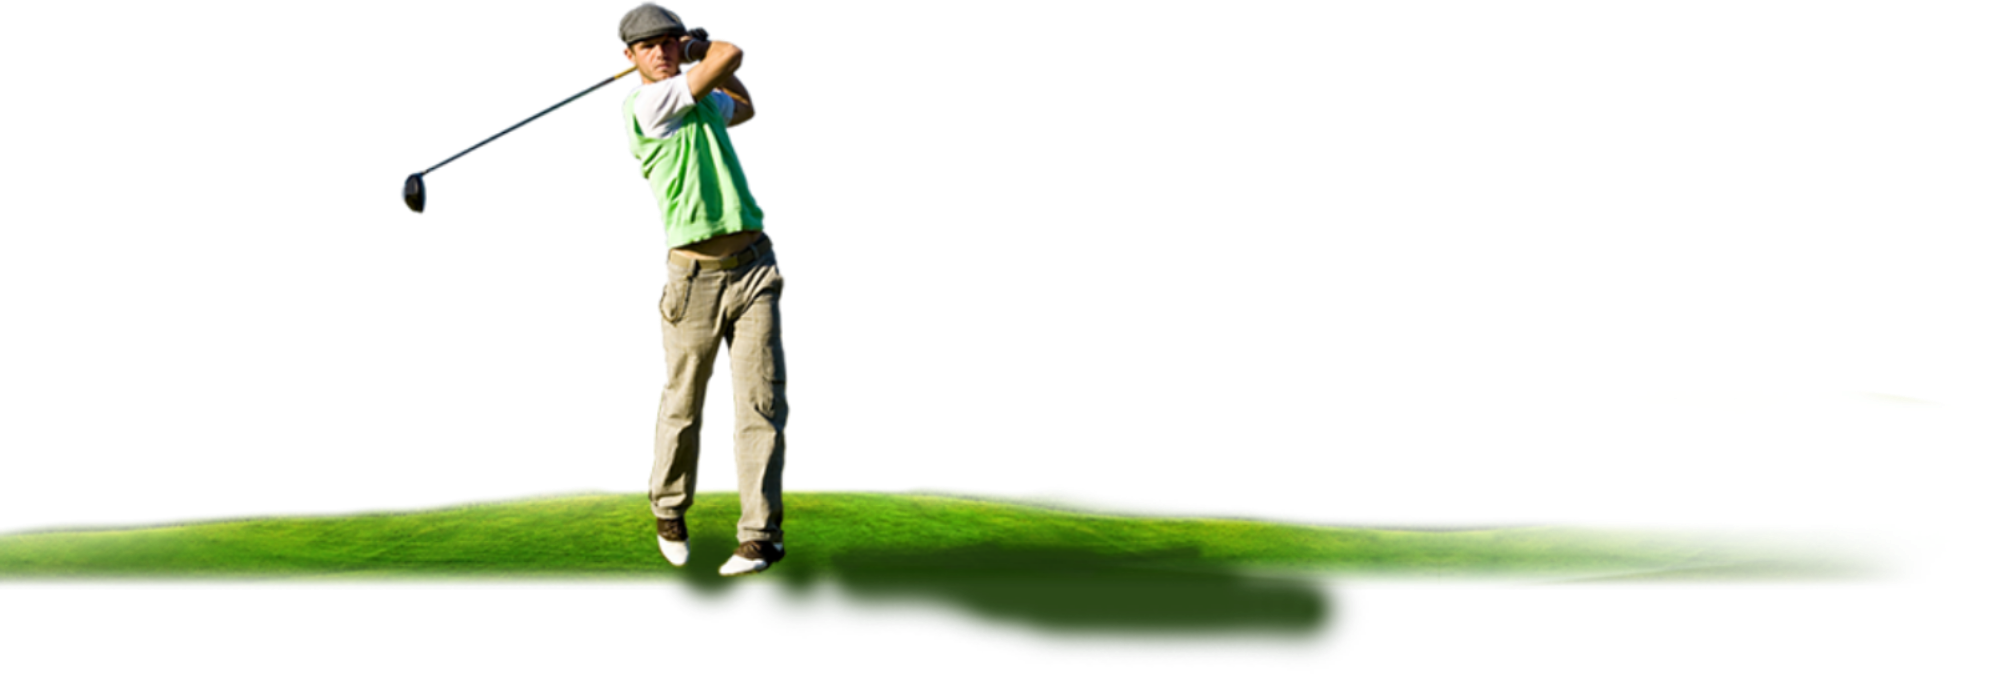 """How can floating help a sports person like a Golfer?    The answer is in more ways than one. First there is  rest and recovery from injury  as golf can be bad for your back. Secondly  there is focus , this is a demonstrated effect of  floating before competition .  Floating allows your subconscious to concentrate . Why is this important? Did you hear about the championship golfer who lost his edge when he took time out to write a book about technique? It turns out that a sure way to put any athlete off his stride is to ask him to explain in detail how he does it. The conscious brain is too slow and maybe """"in the wrong place"""" for a good golf swing. The physical coordination to catch a ball, to strike a ball, even just to walk along is housed in our subconscious, and stress interferes with its function."""